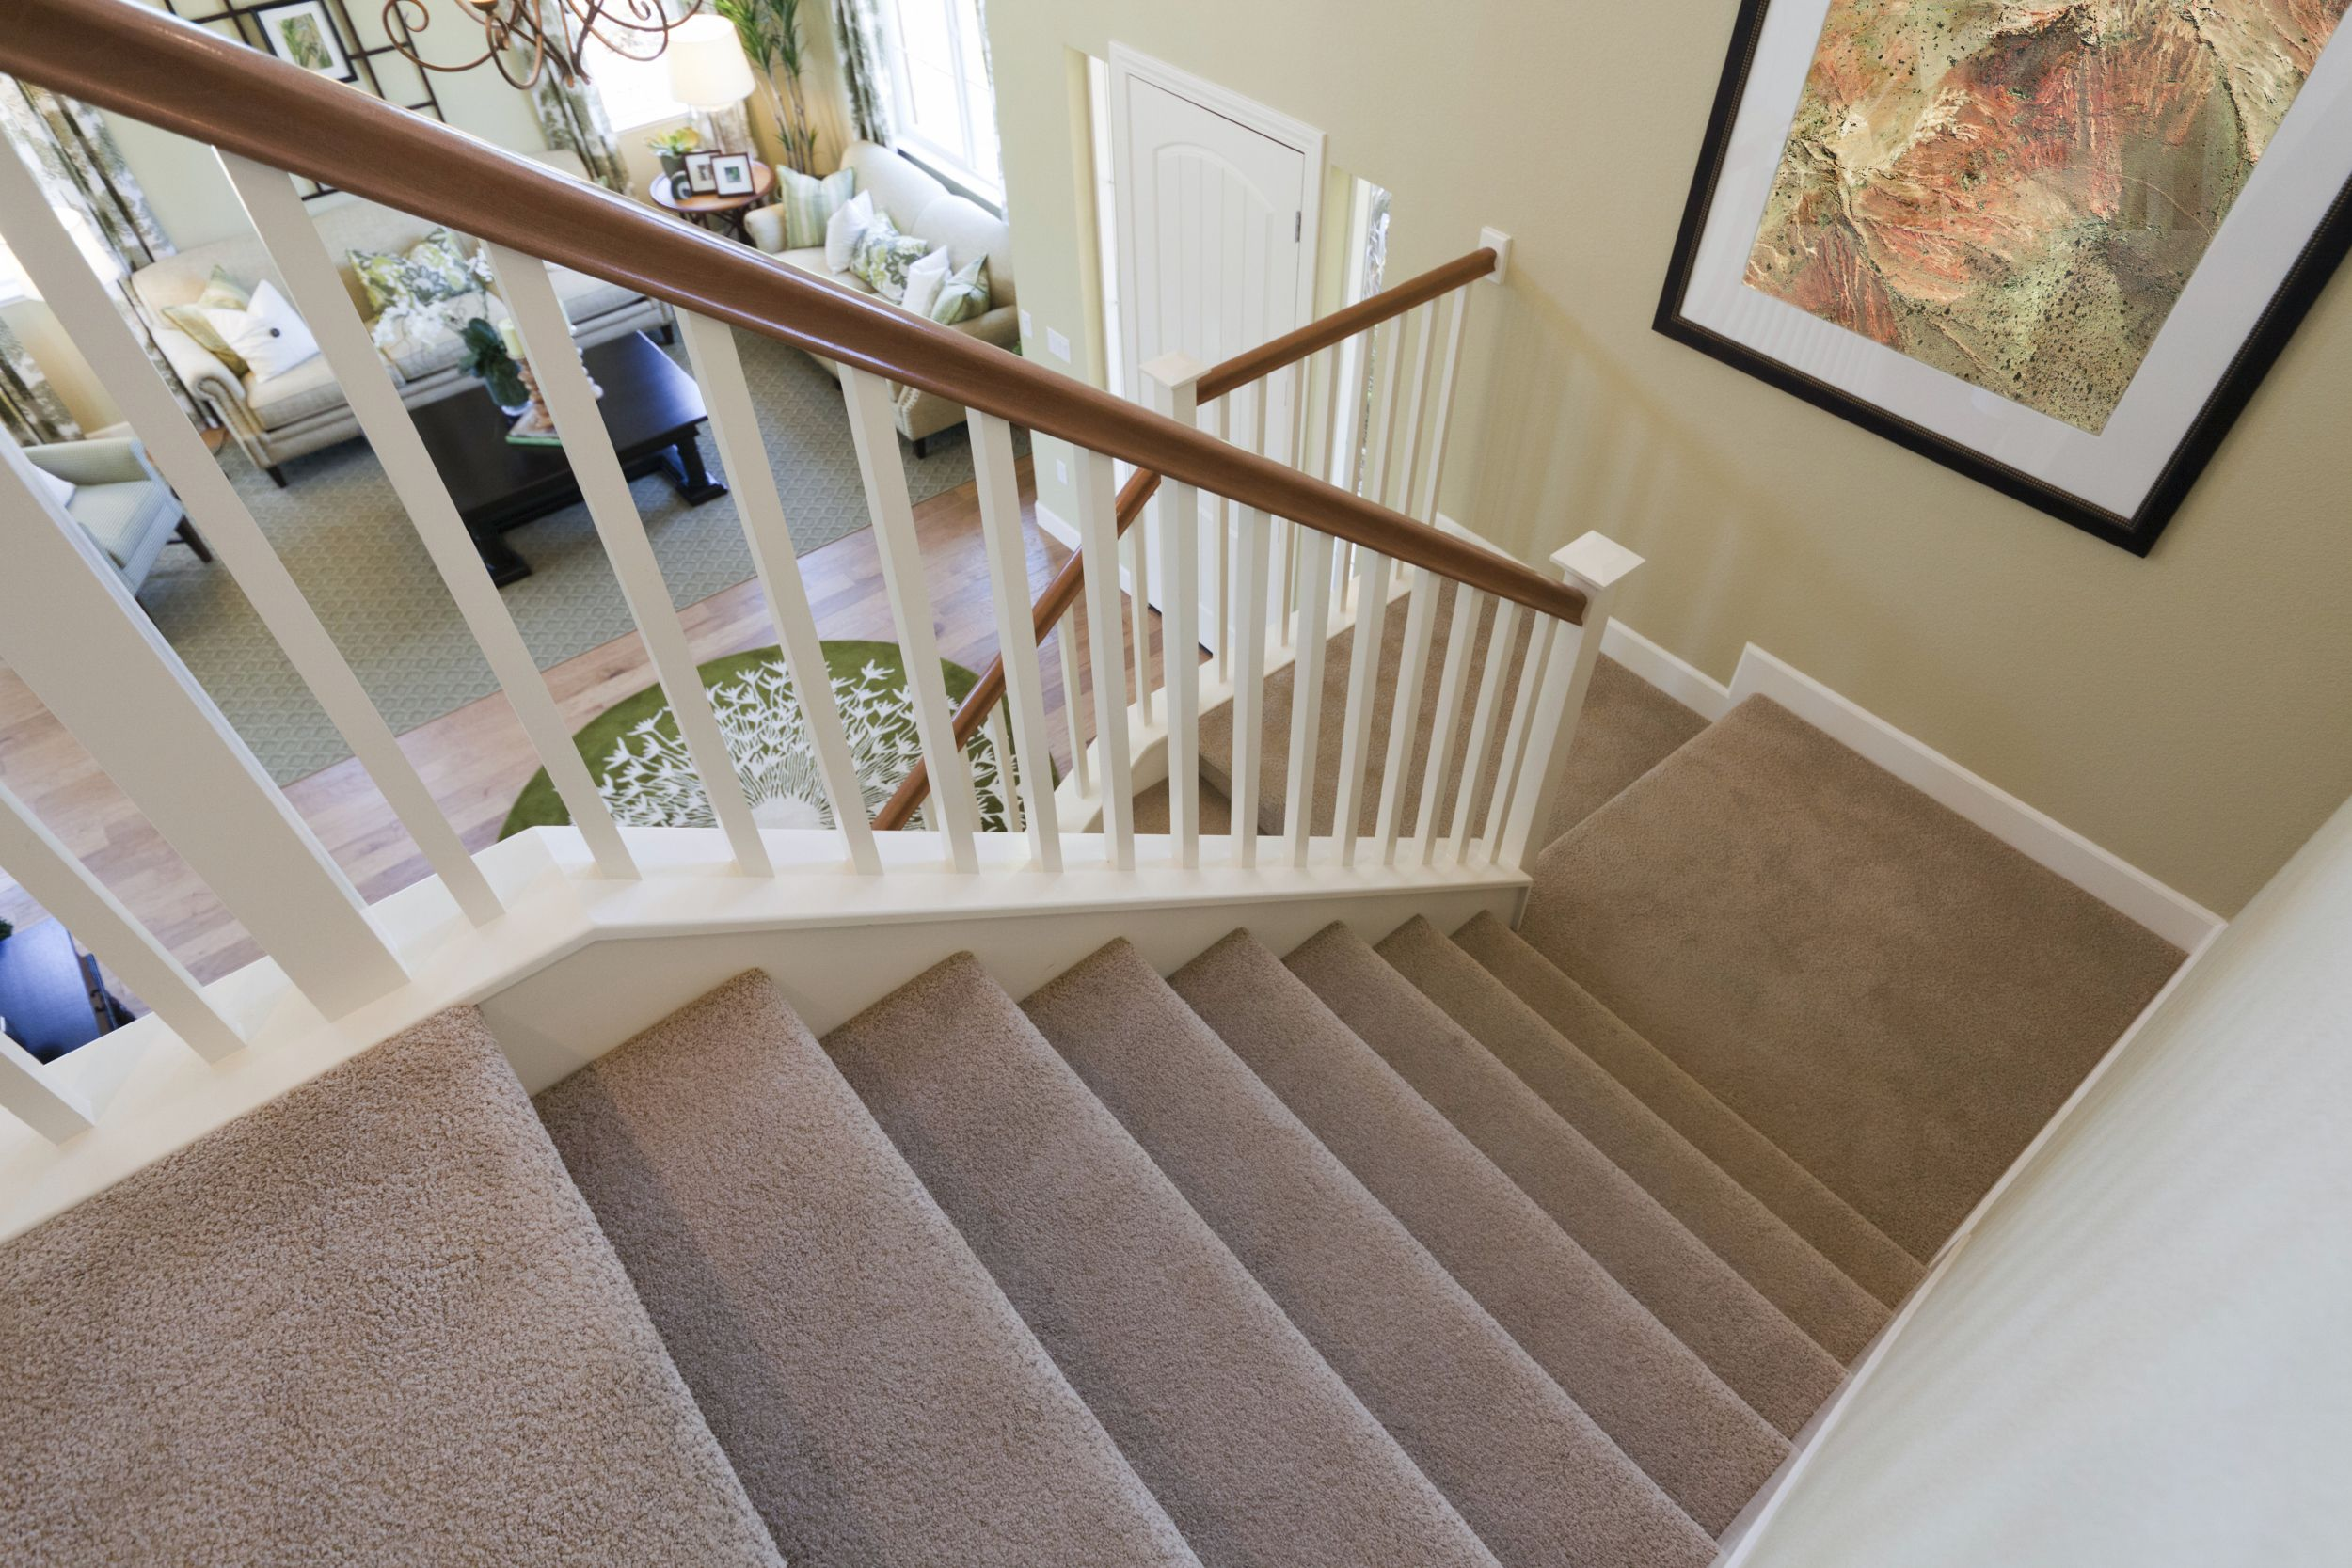 Design Handrails For Stairs handrail code for stairs and guards deciphered what is the best carpet stairs